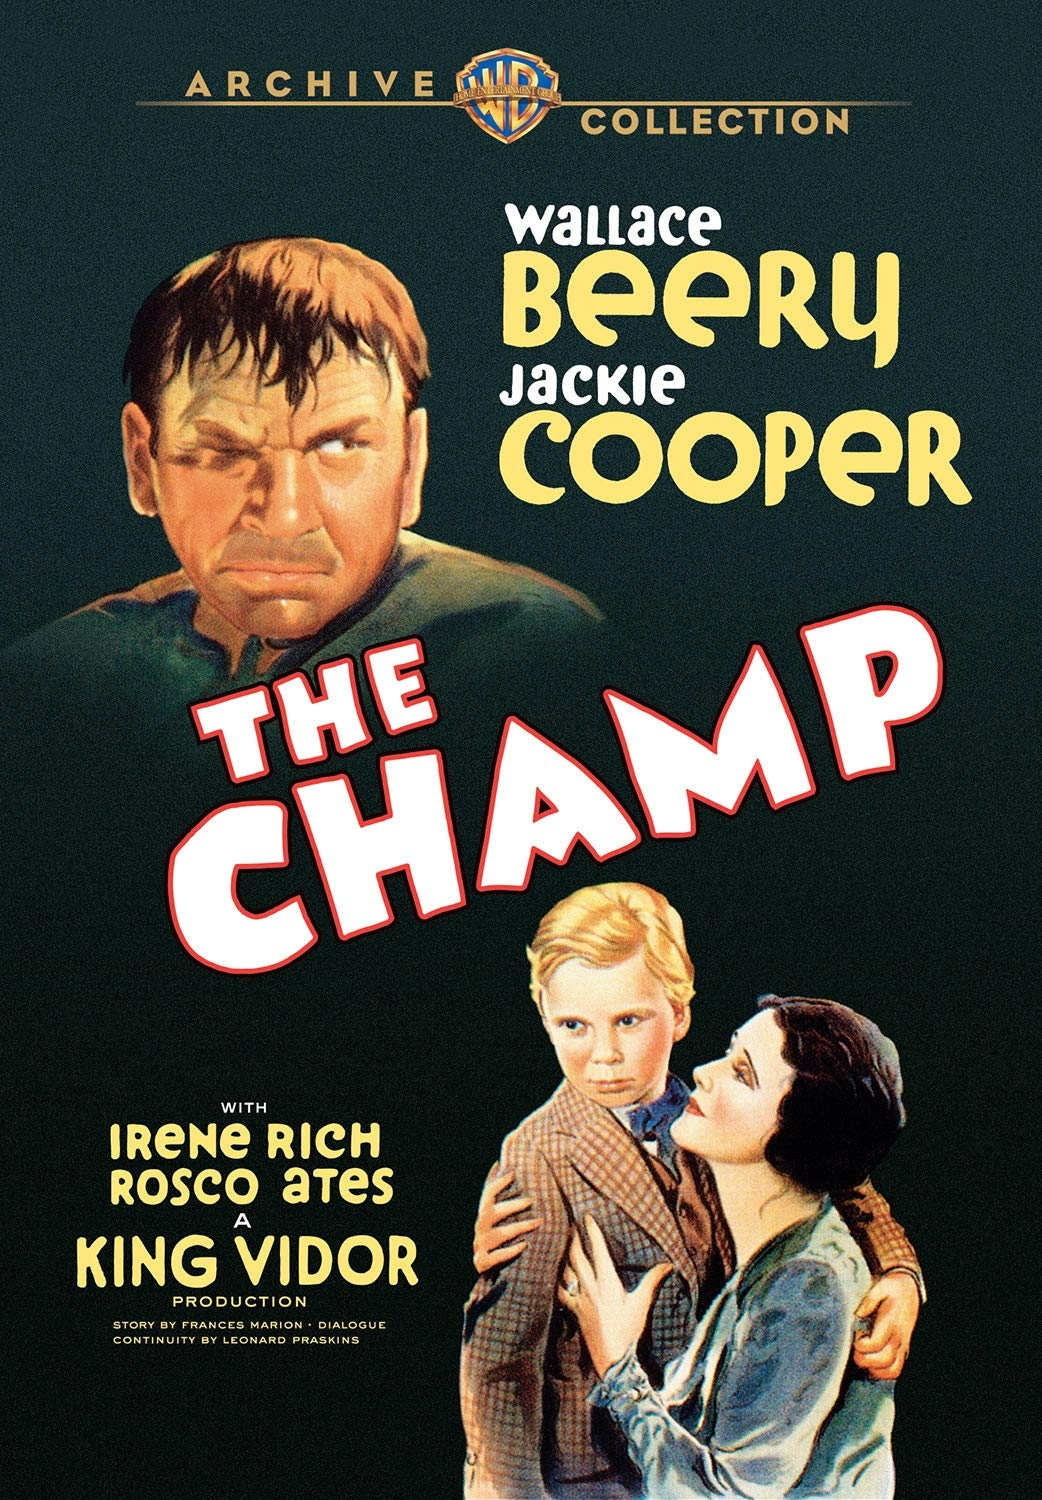 The Champ (1931) starring Wallace Beery, Jackie Cooper